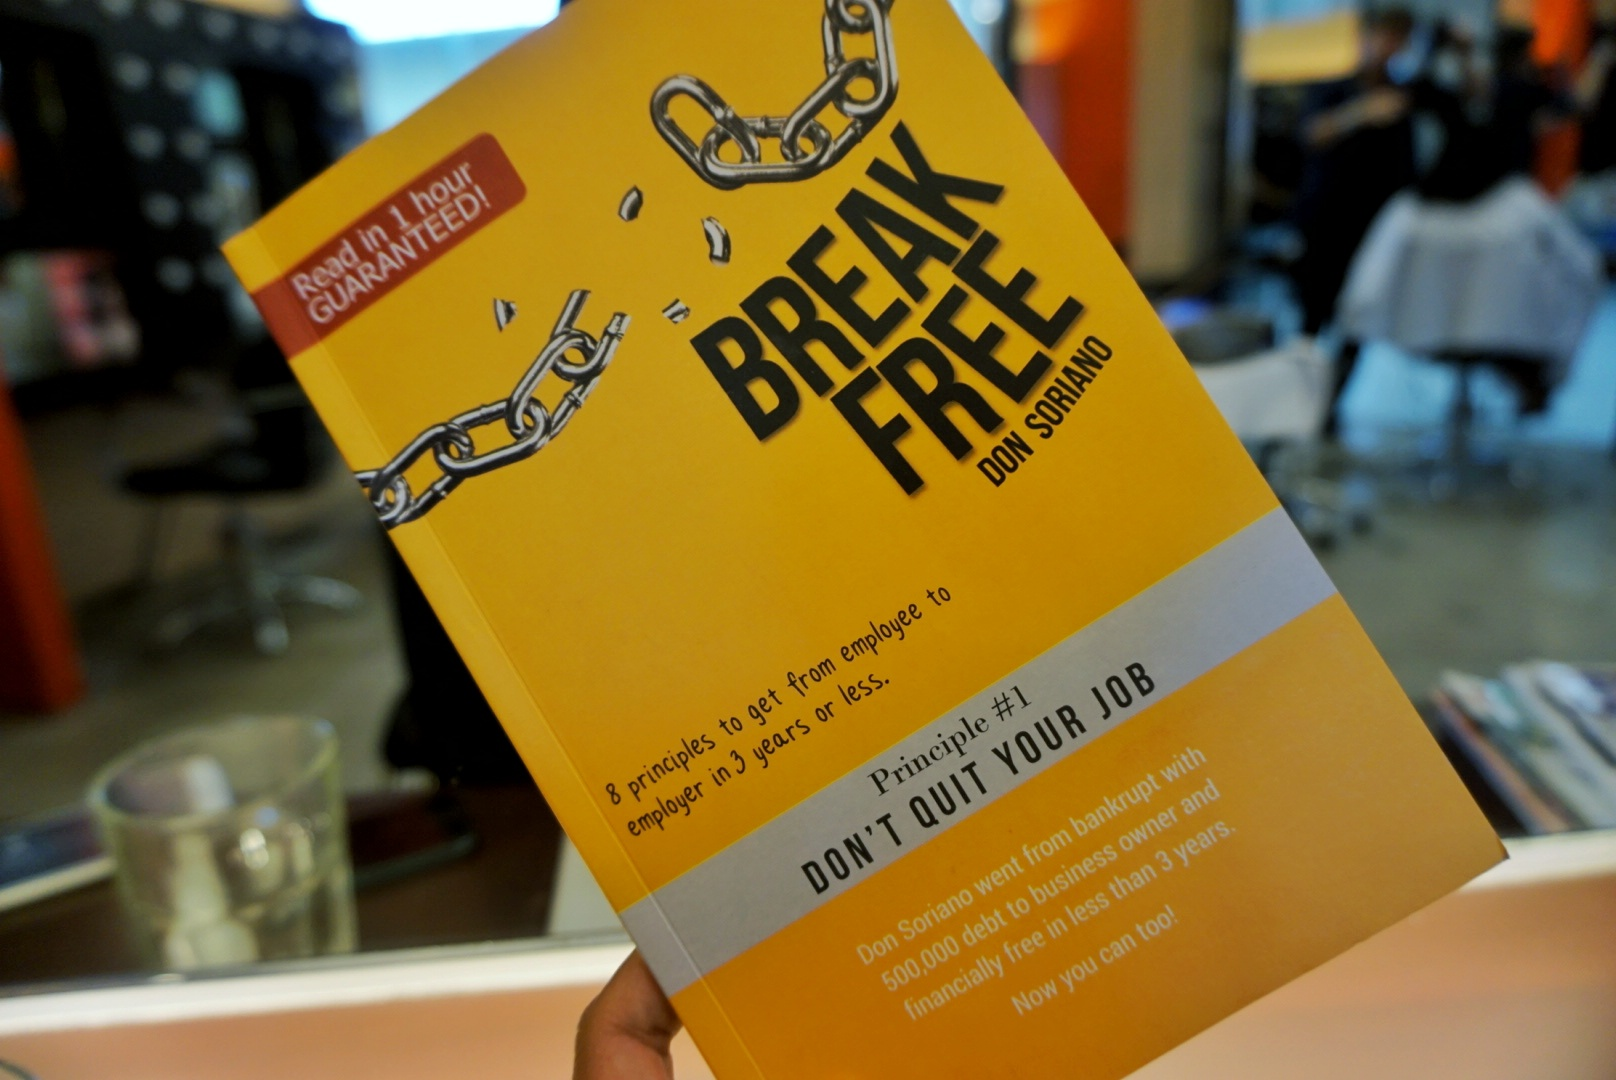 Break Free book by Don Soriano